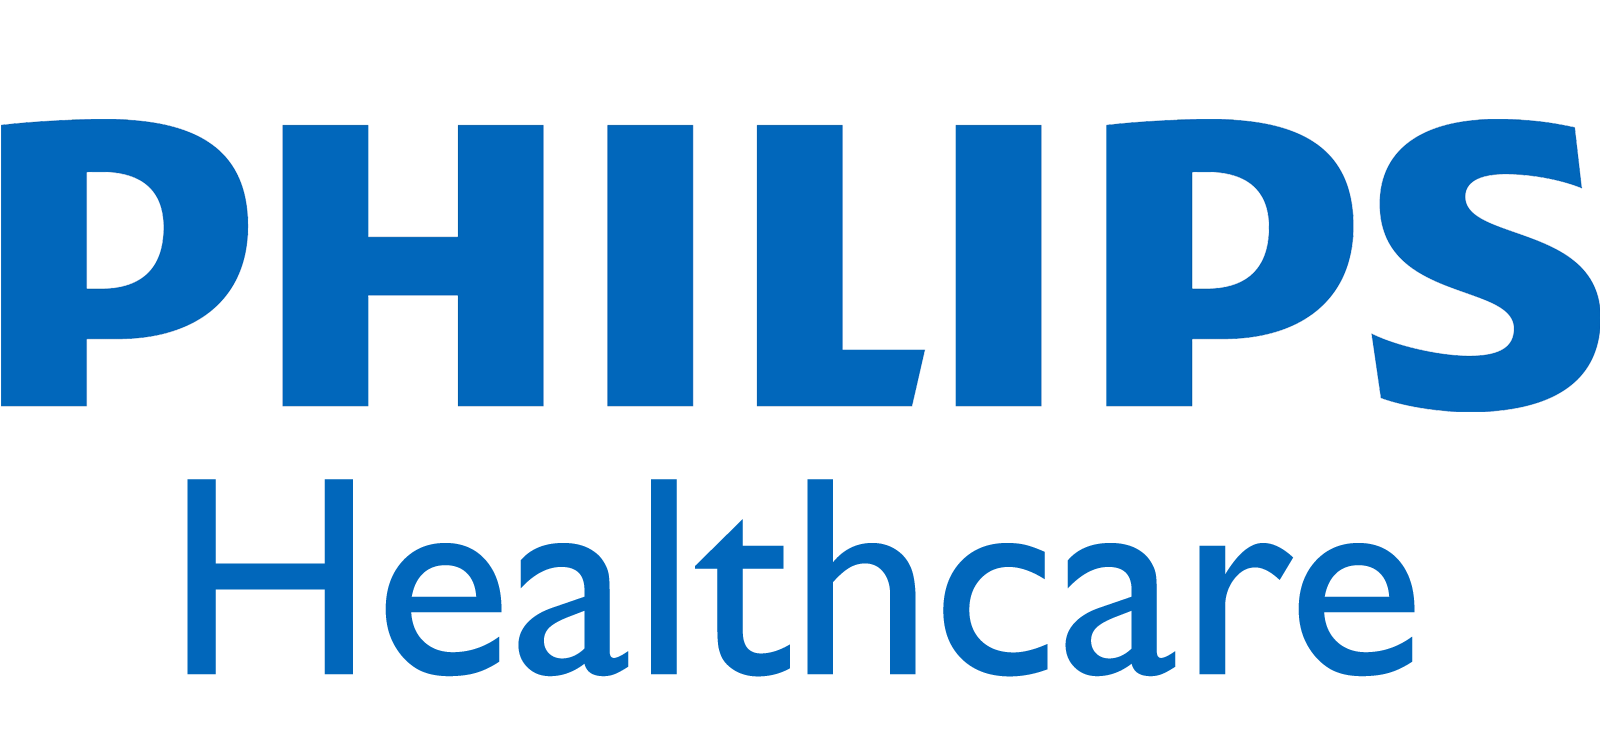 Philips-Logo-Images-3.png